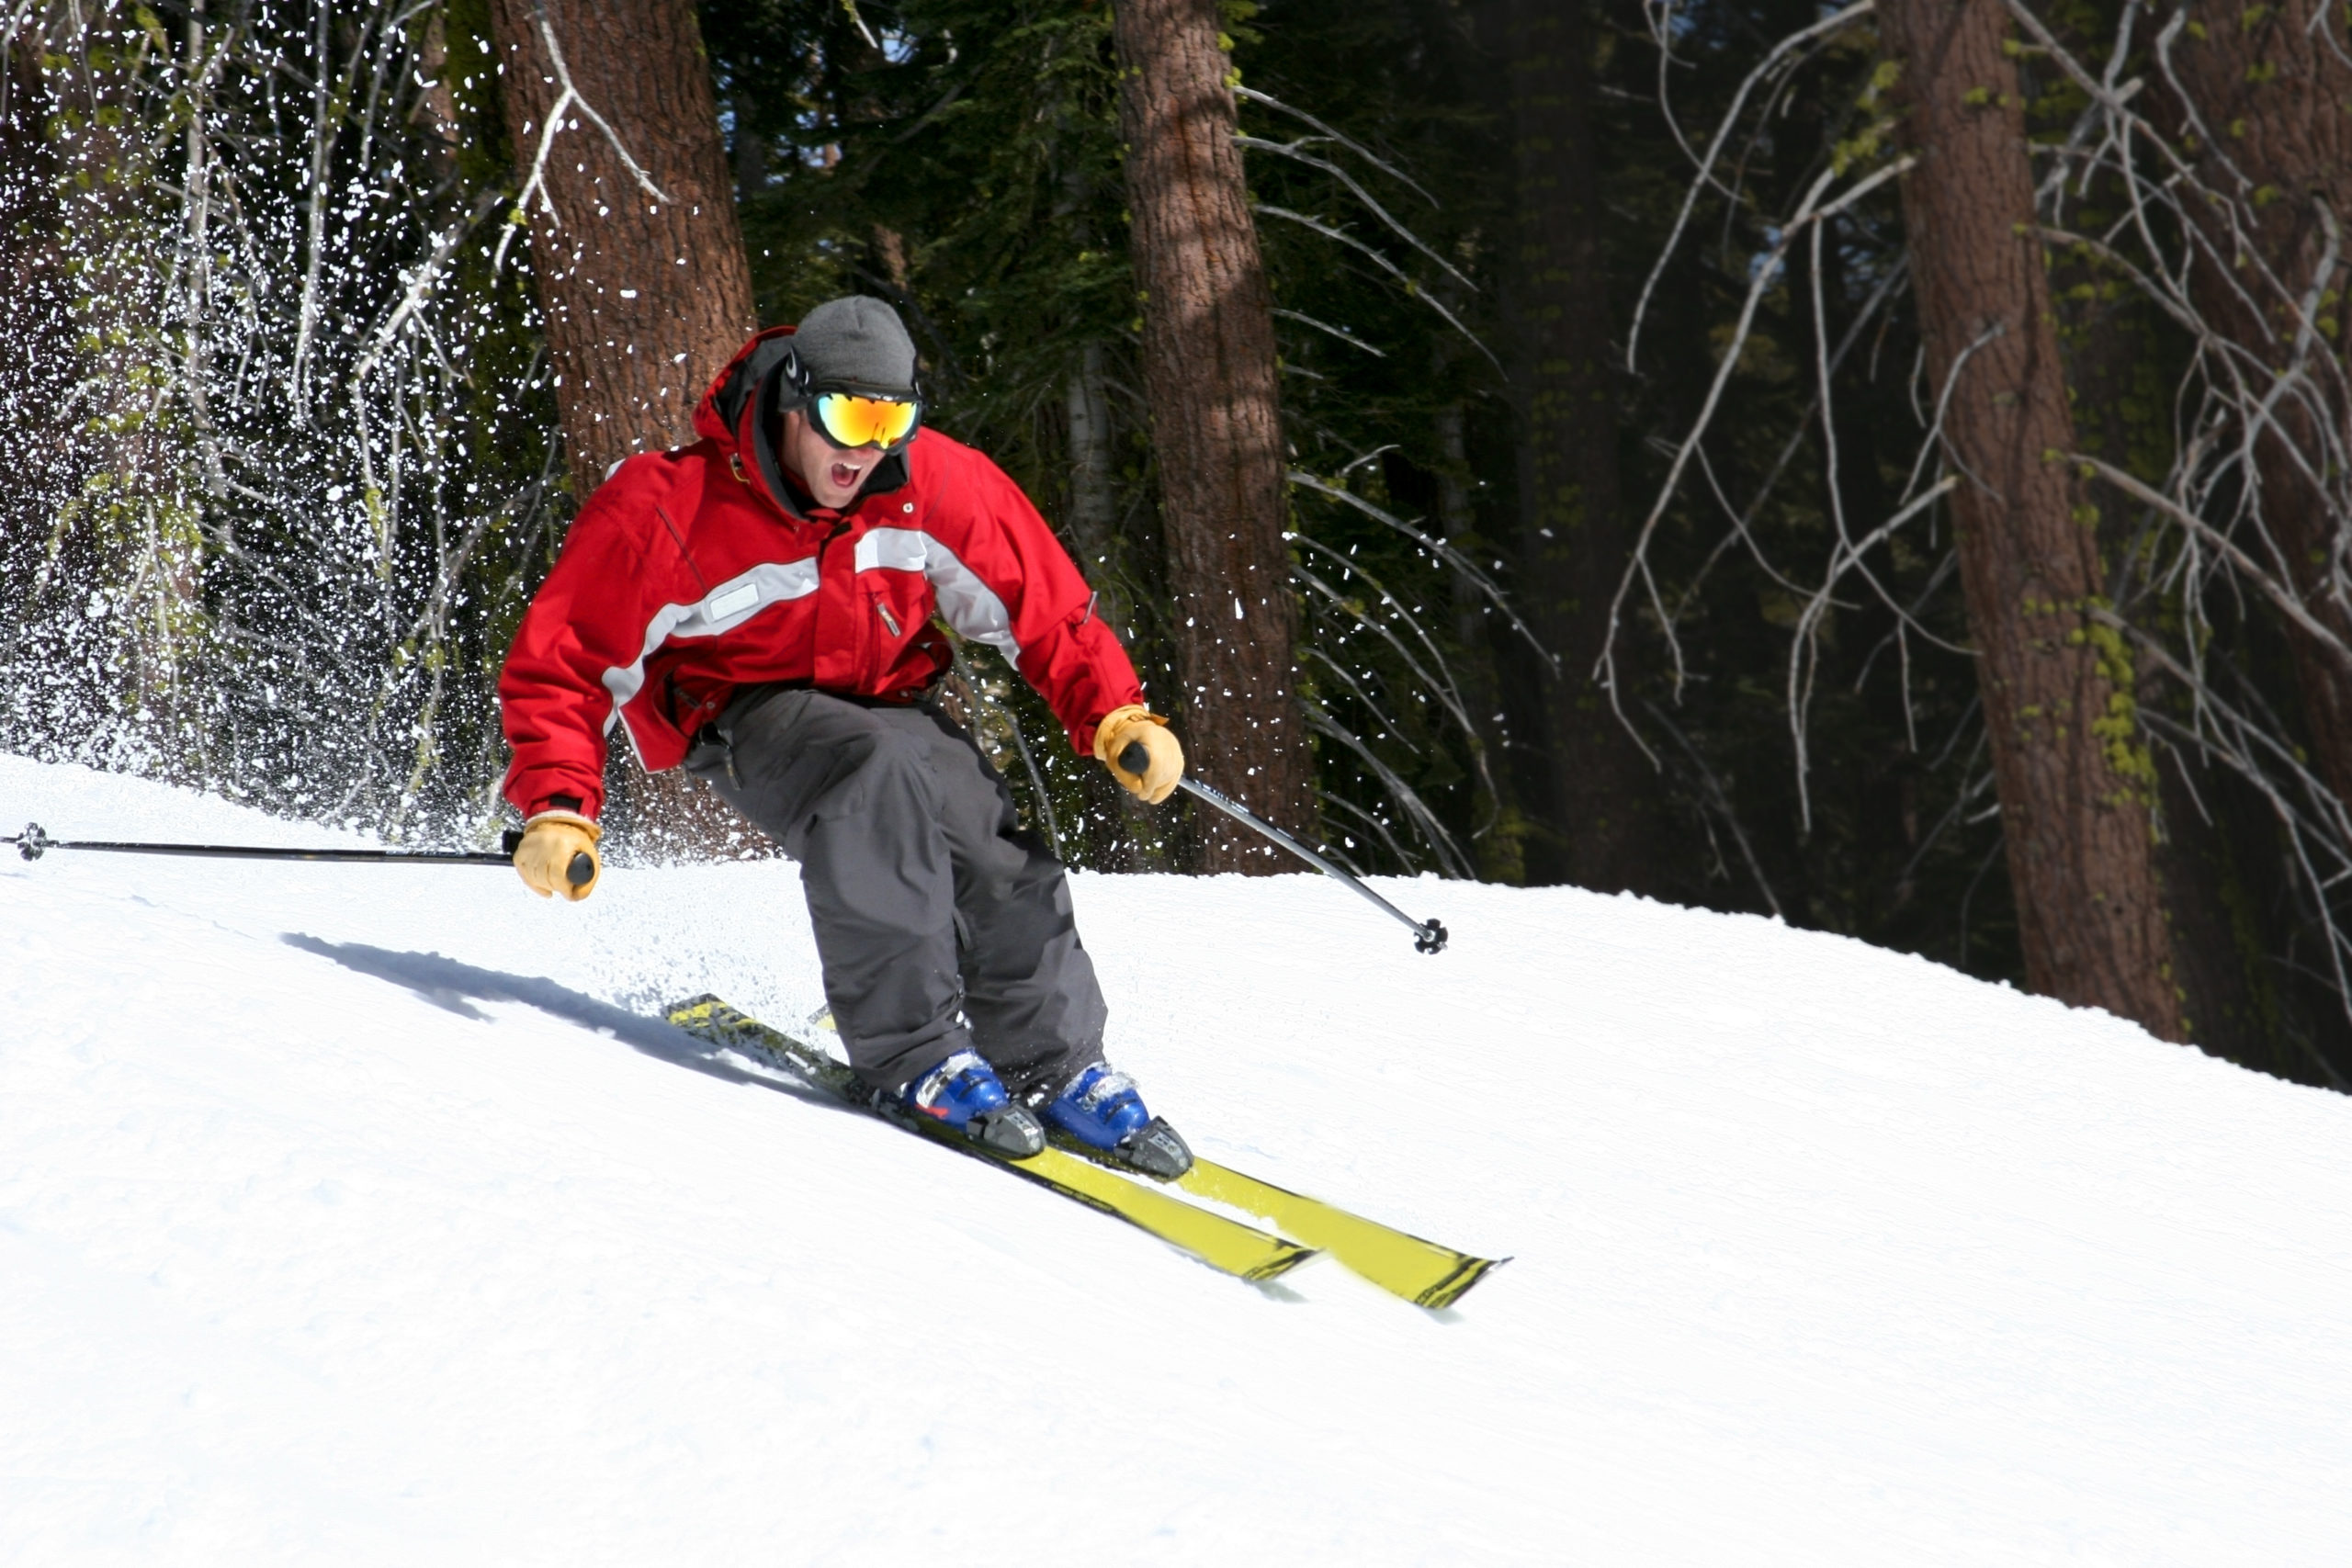 Man snow skiing downhill